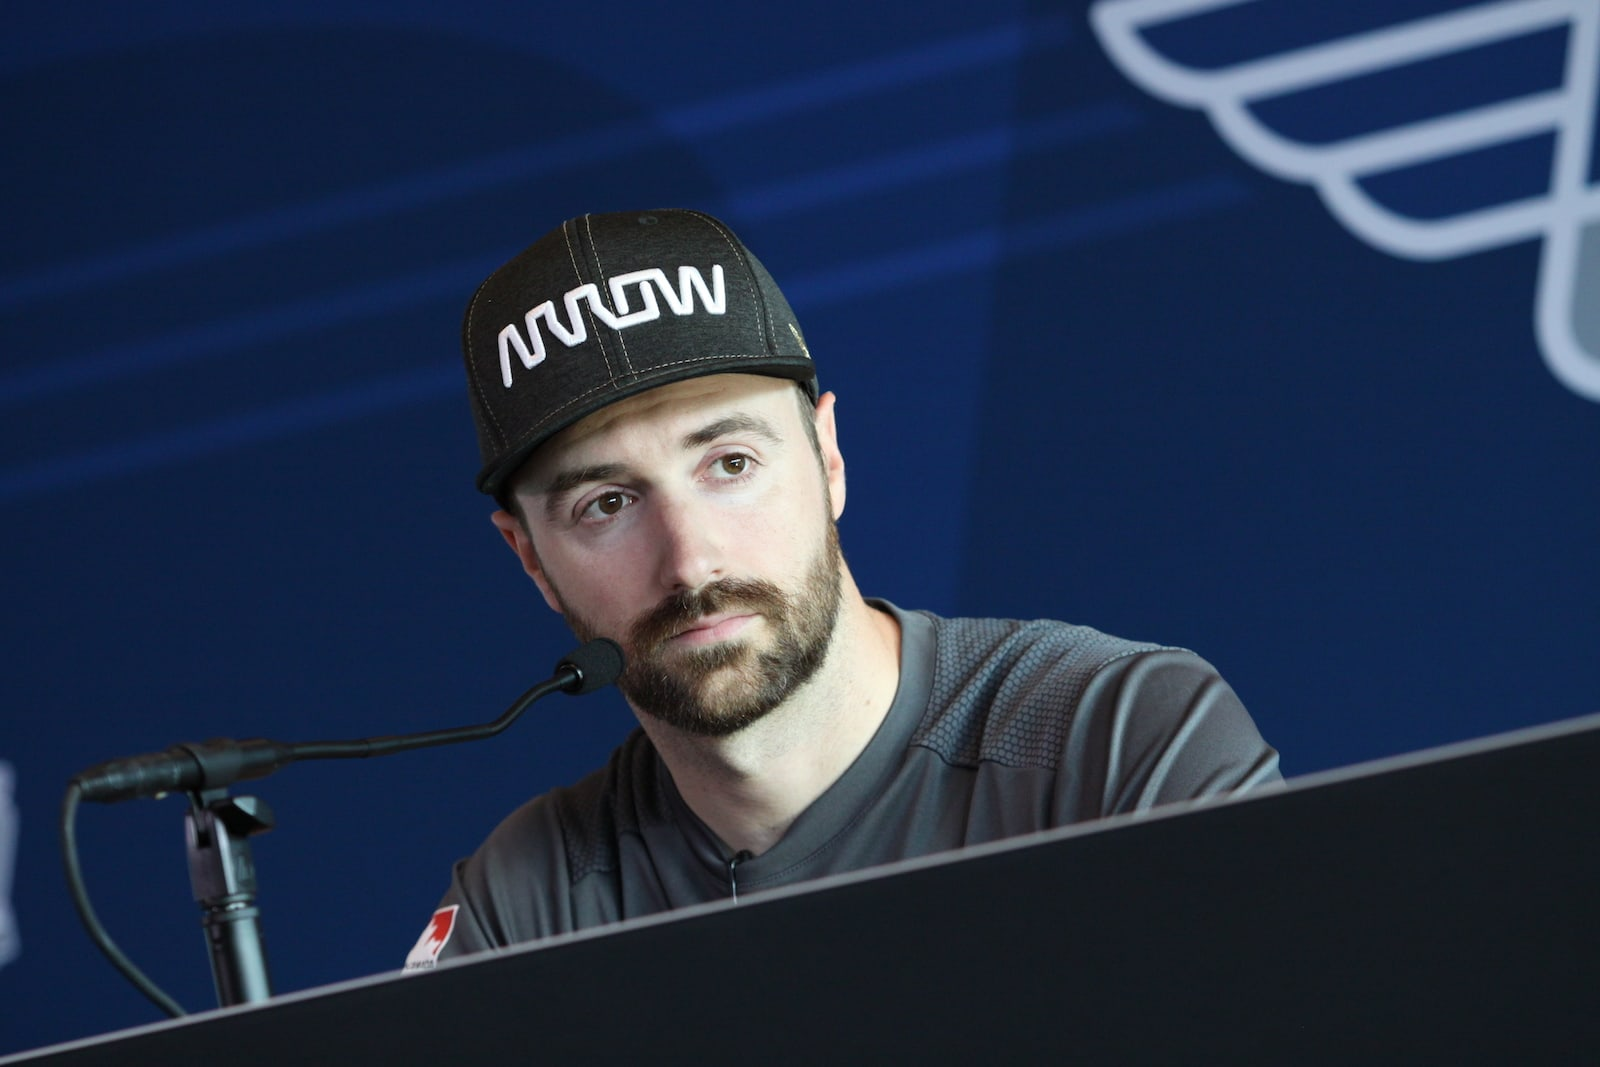 James Hinchcliffe press conference after Indy 500 Bump Day